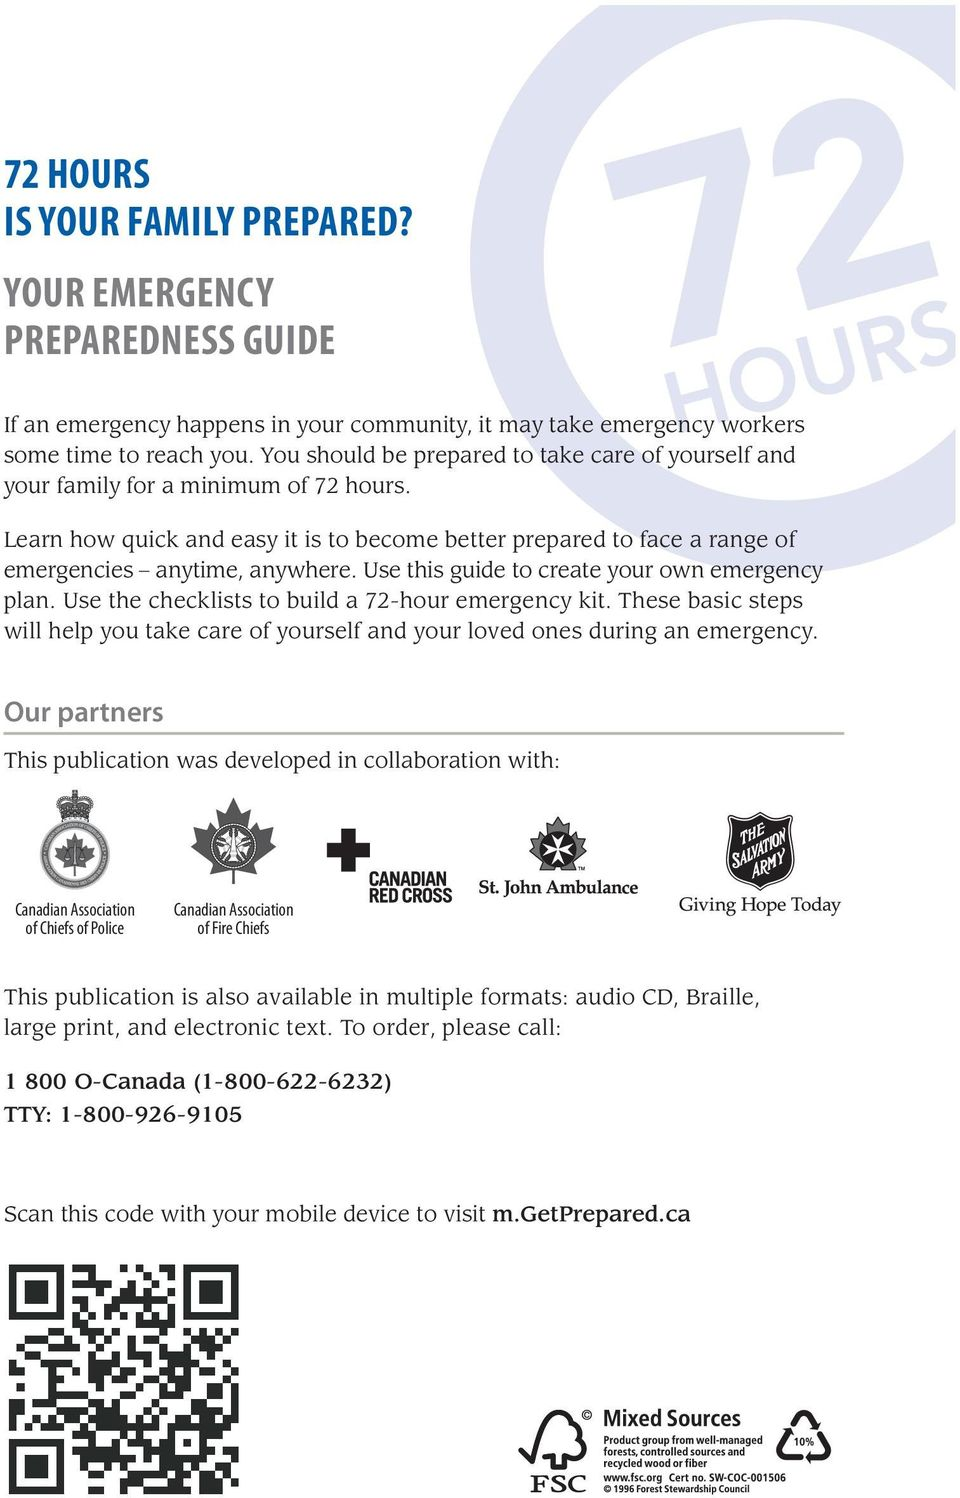 Use this guide to create your own emergency plan. Use the checklists to build a 72-hour emergency kit. These basic steps will help you take care of yourself and your loved ones during an emergency.